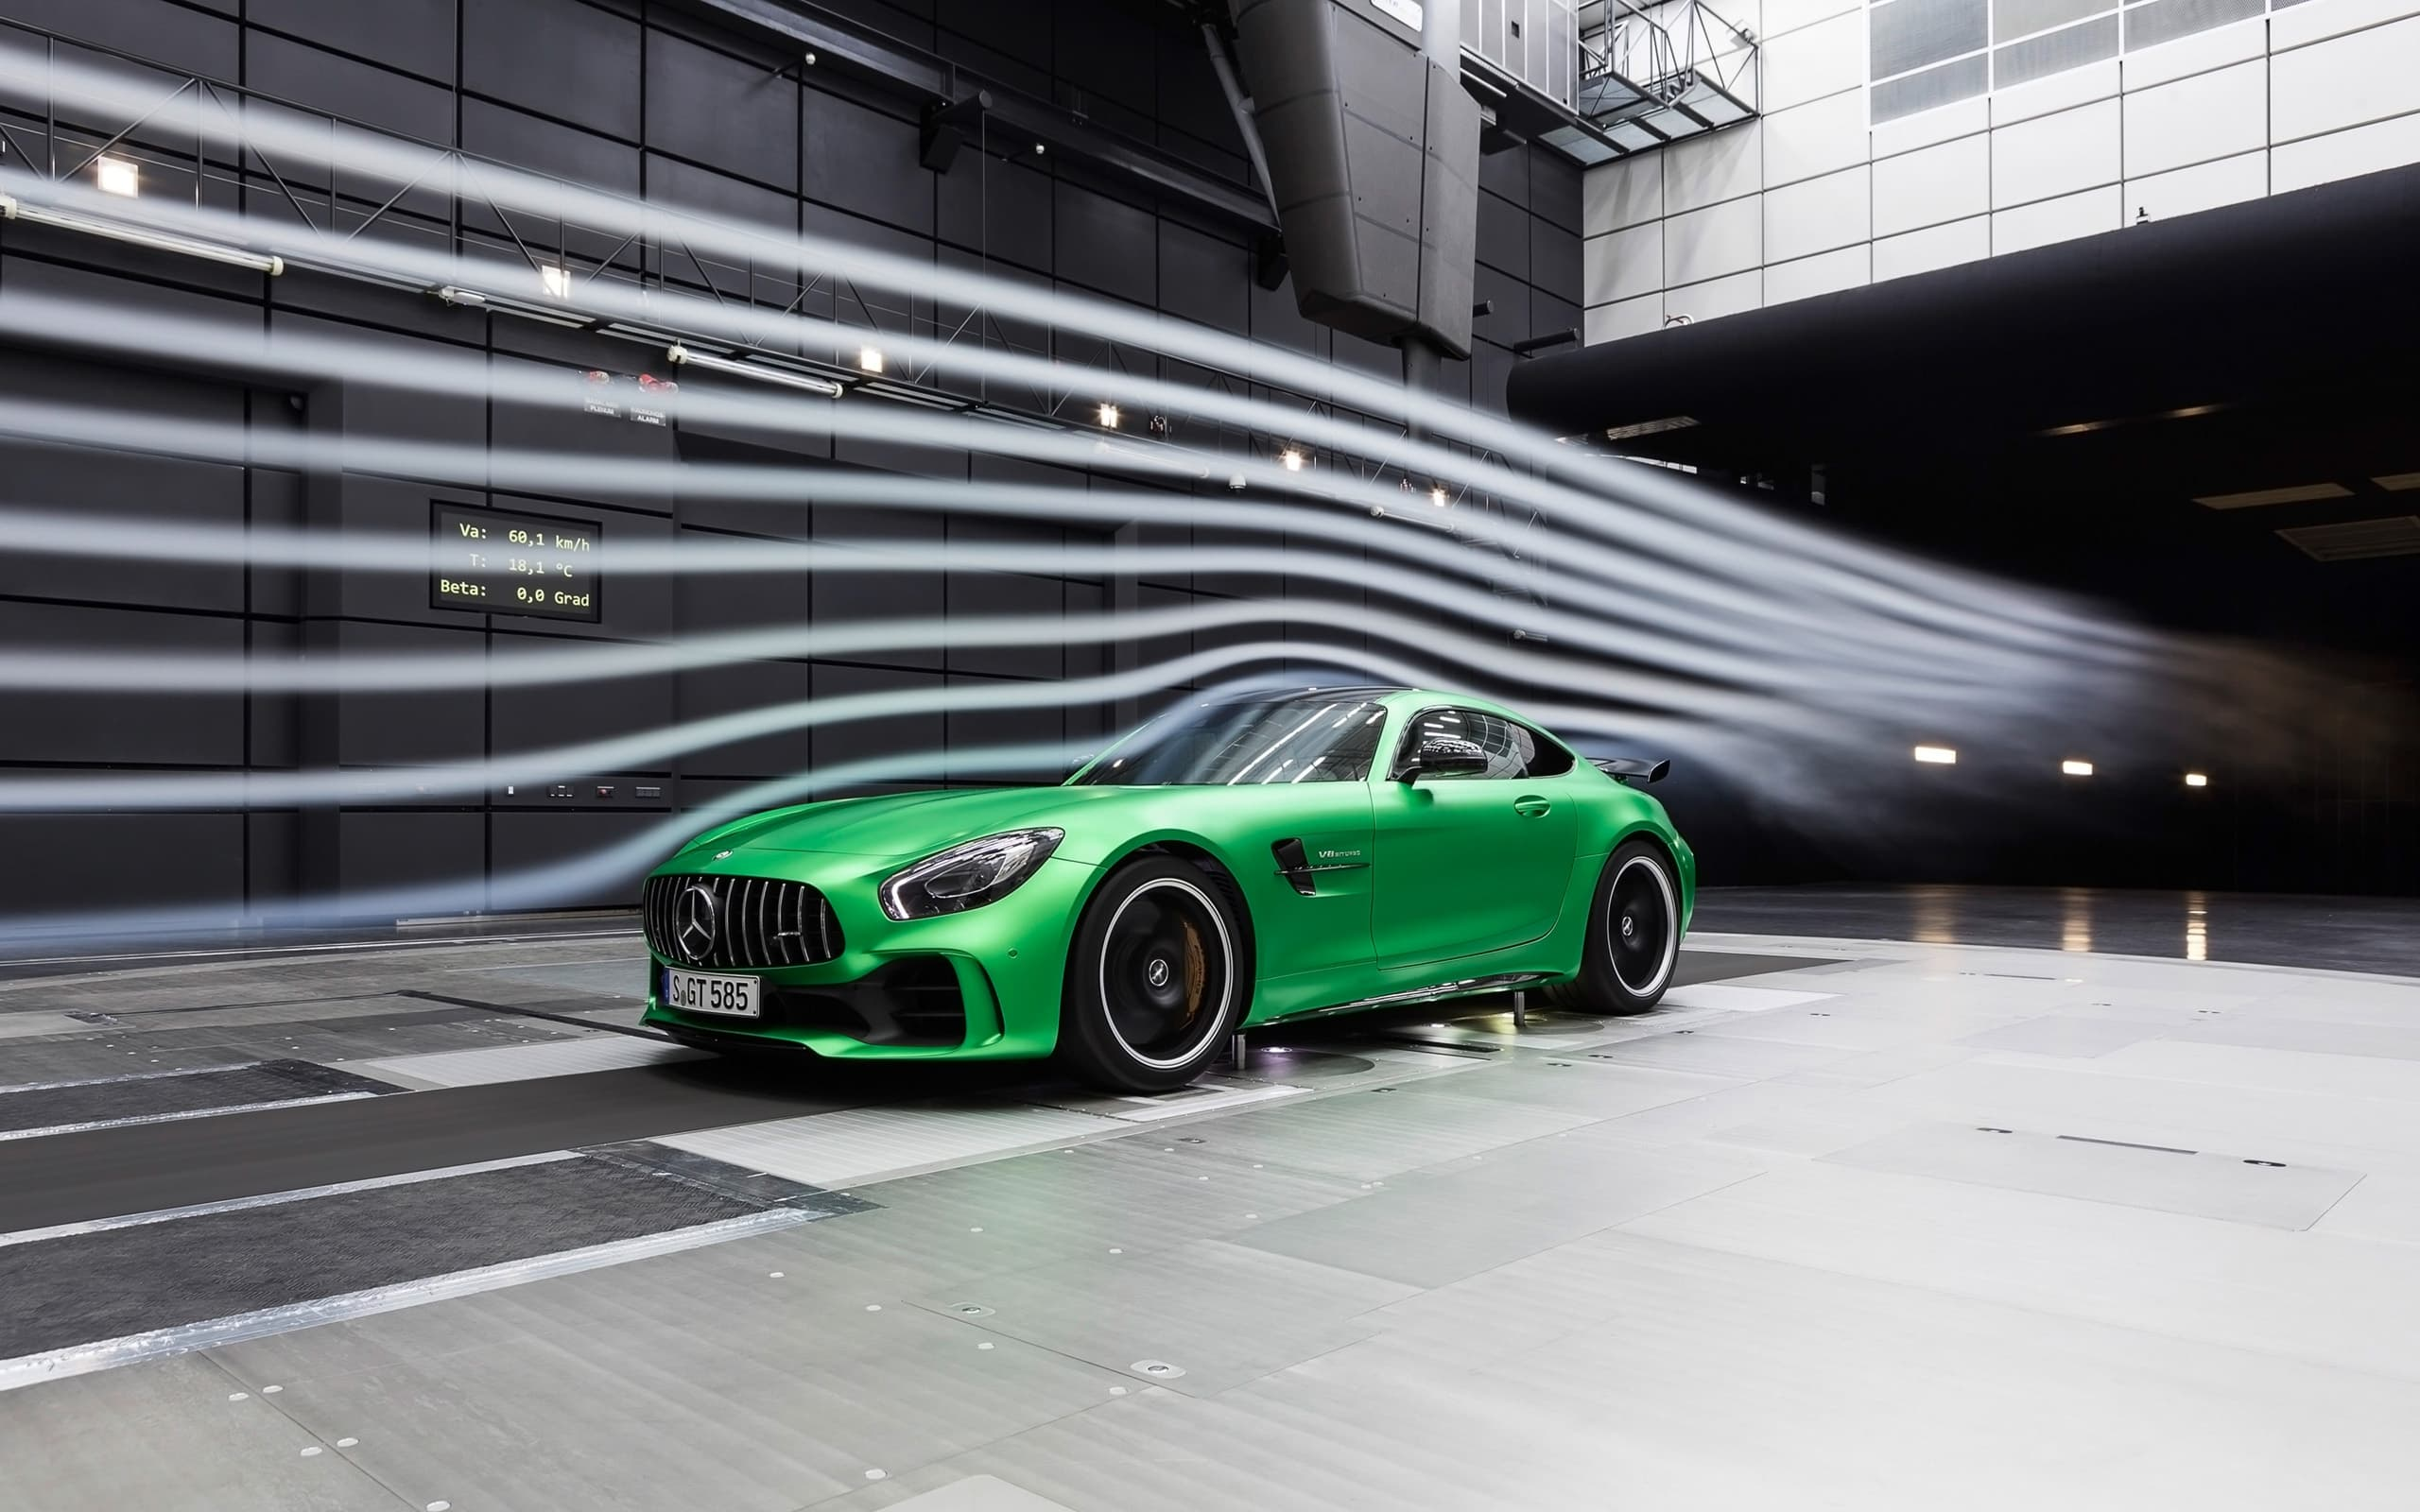 Mercedes Amg Gtr >> Mercedes AMG GT R 2017 wallpapers HD High Quality and Resolution